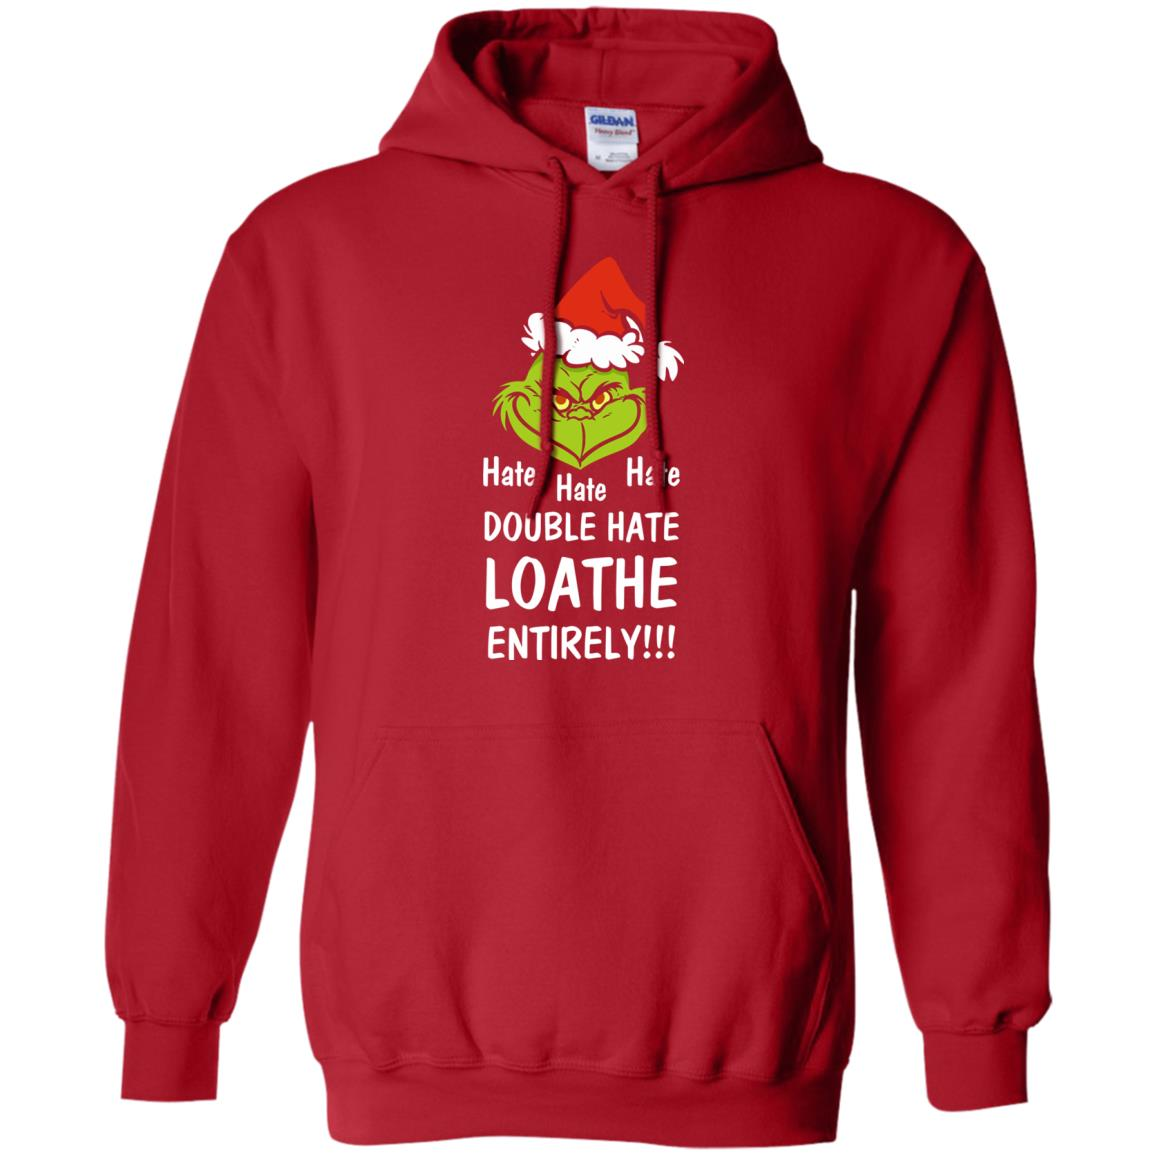 mr grinch hate hate hate double hate loather entirely christmas sweater shirt